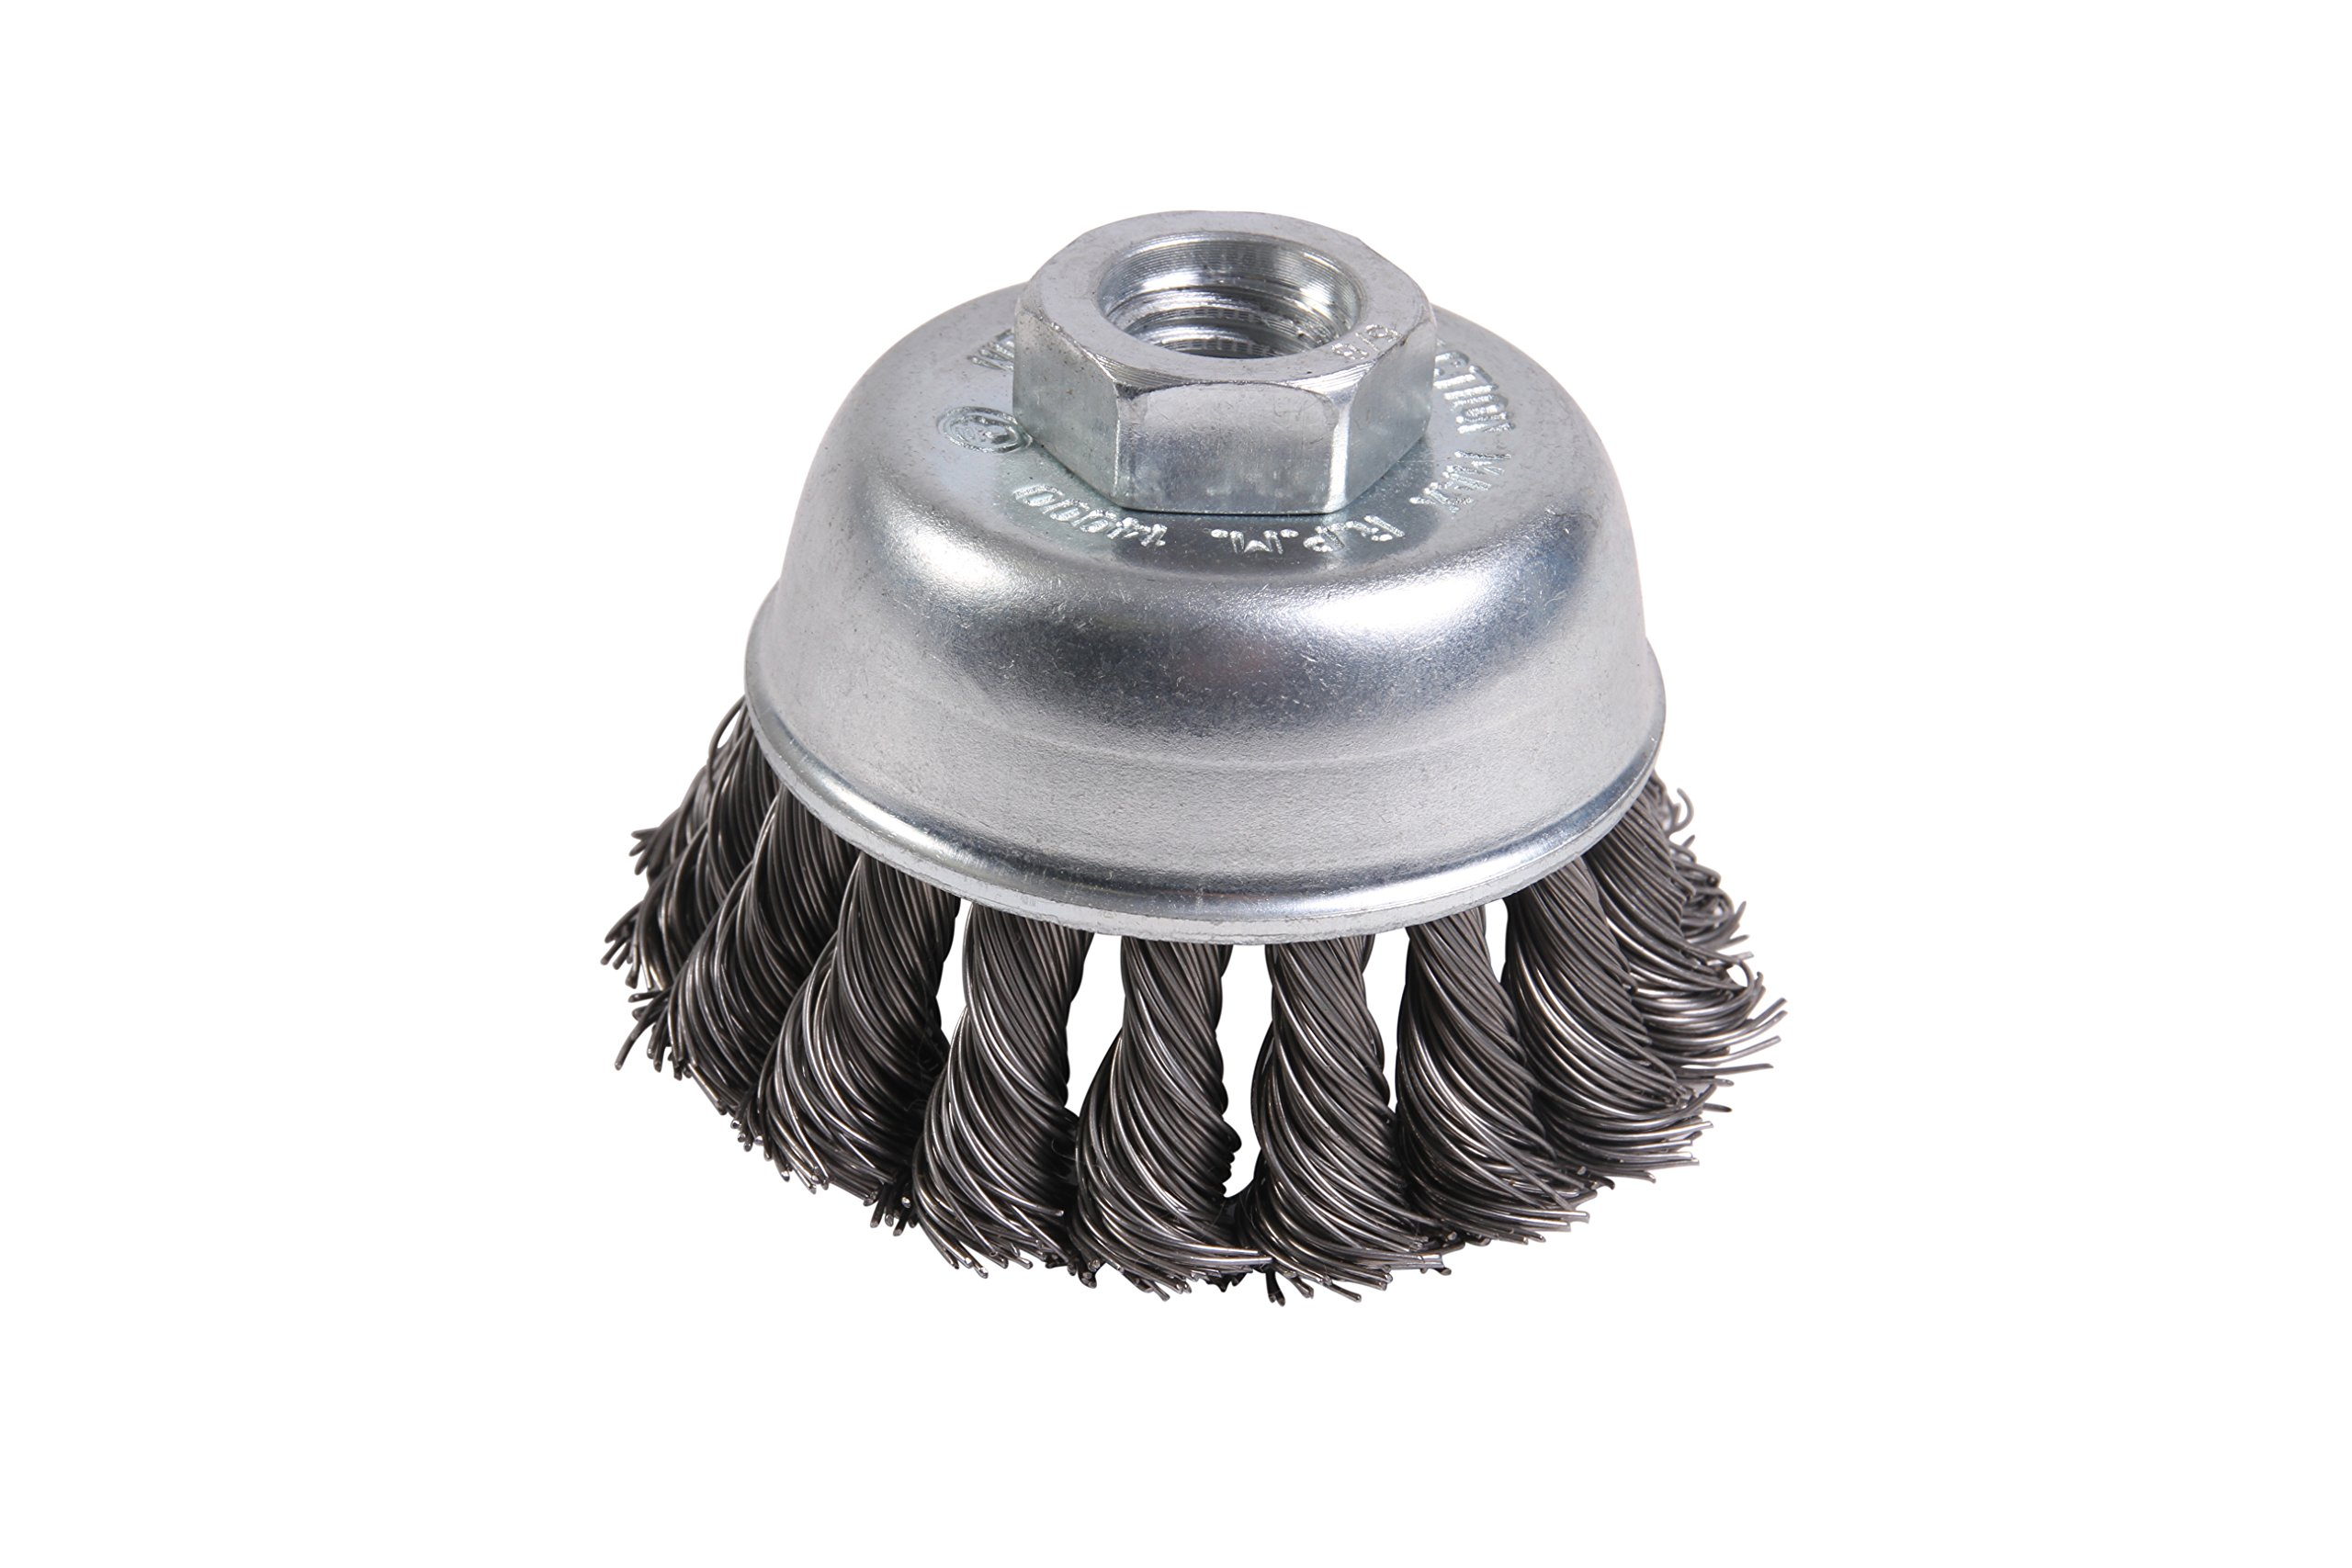 Mercer 189011B Premium Knot Cup Brush 2-3/4'' x 5/8''-11 For Angle Grinders, 10-Pack by Mercer Industries (Image #1)